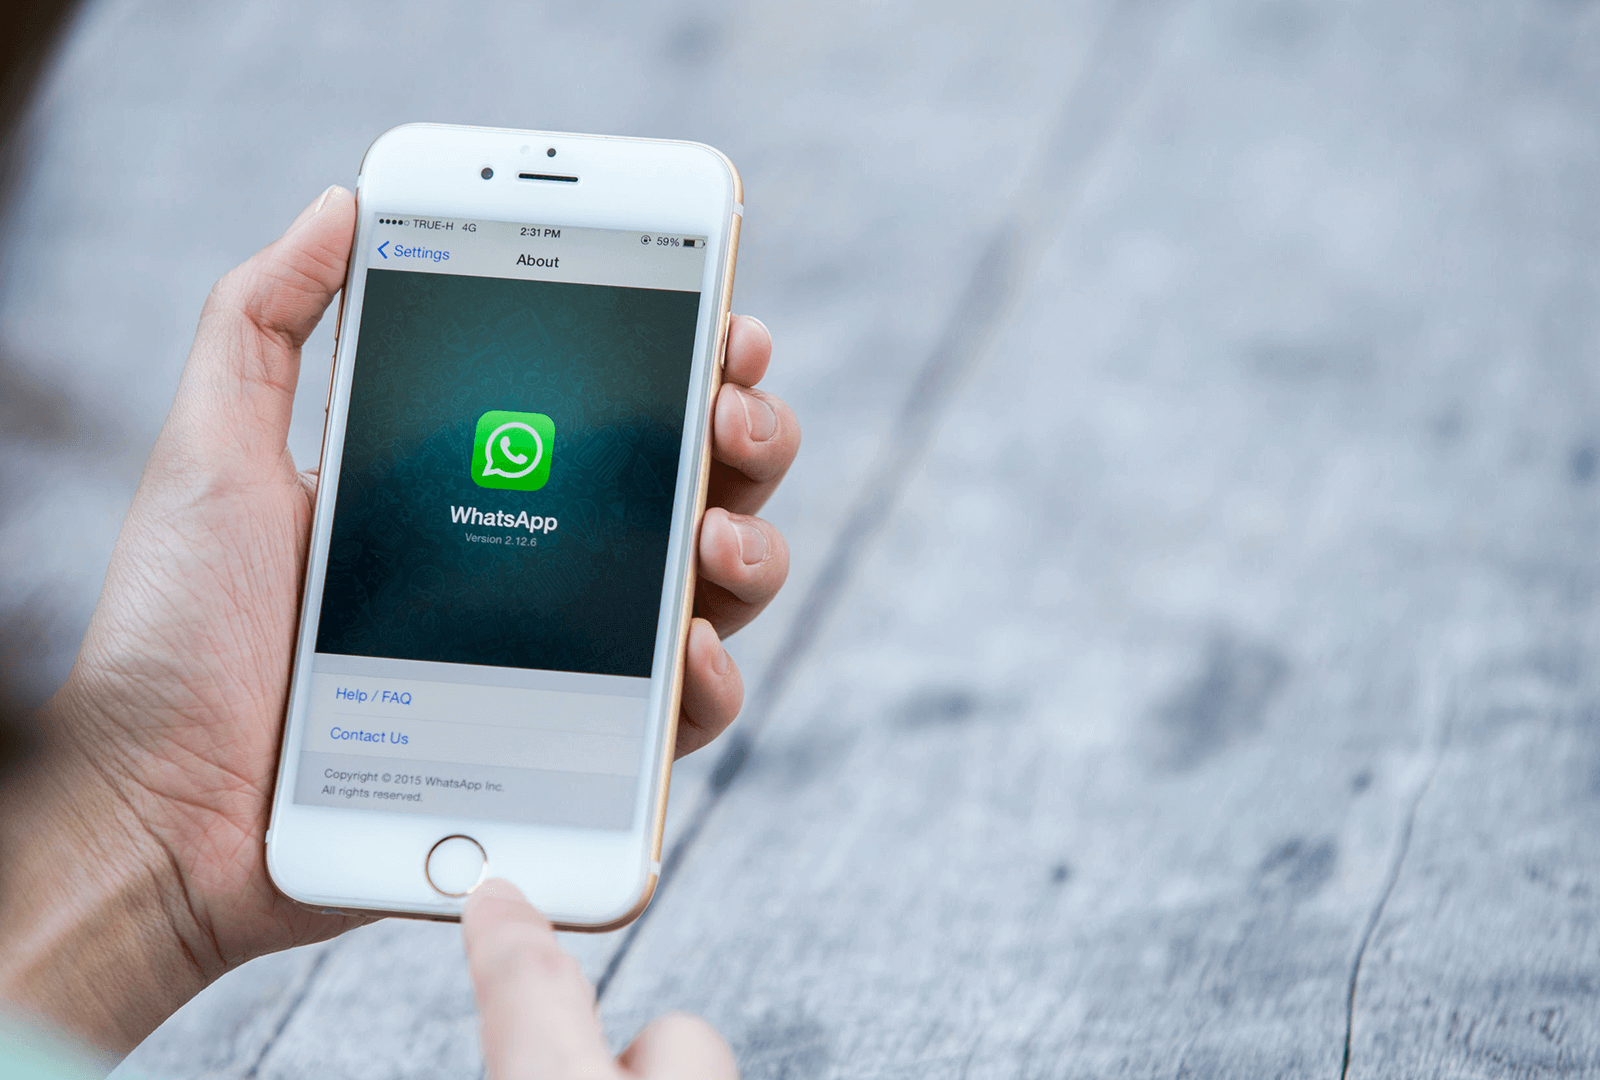 Whatsapp Like Messaging App